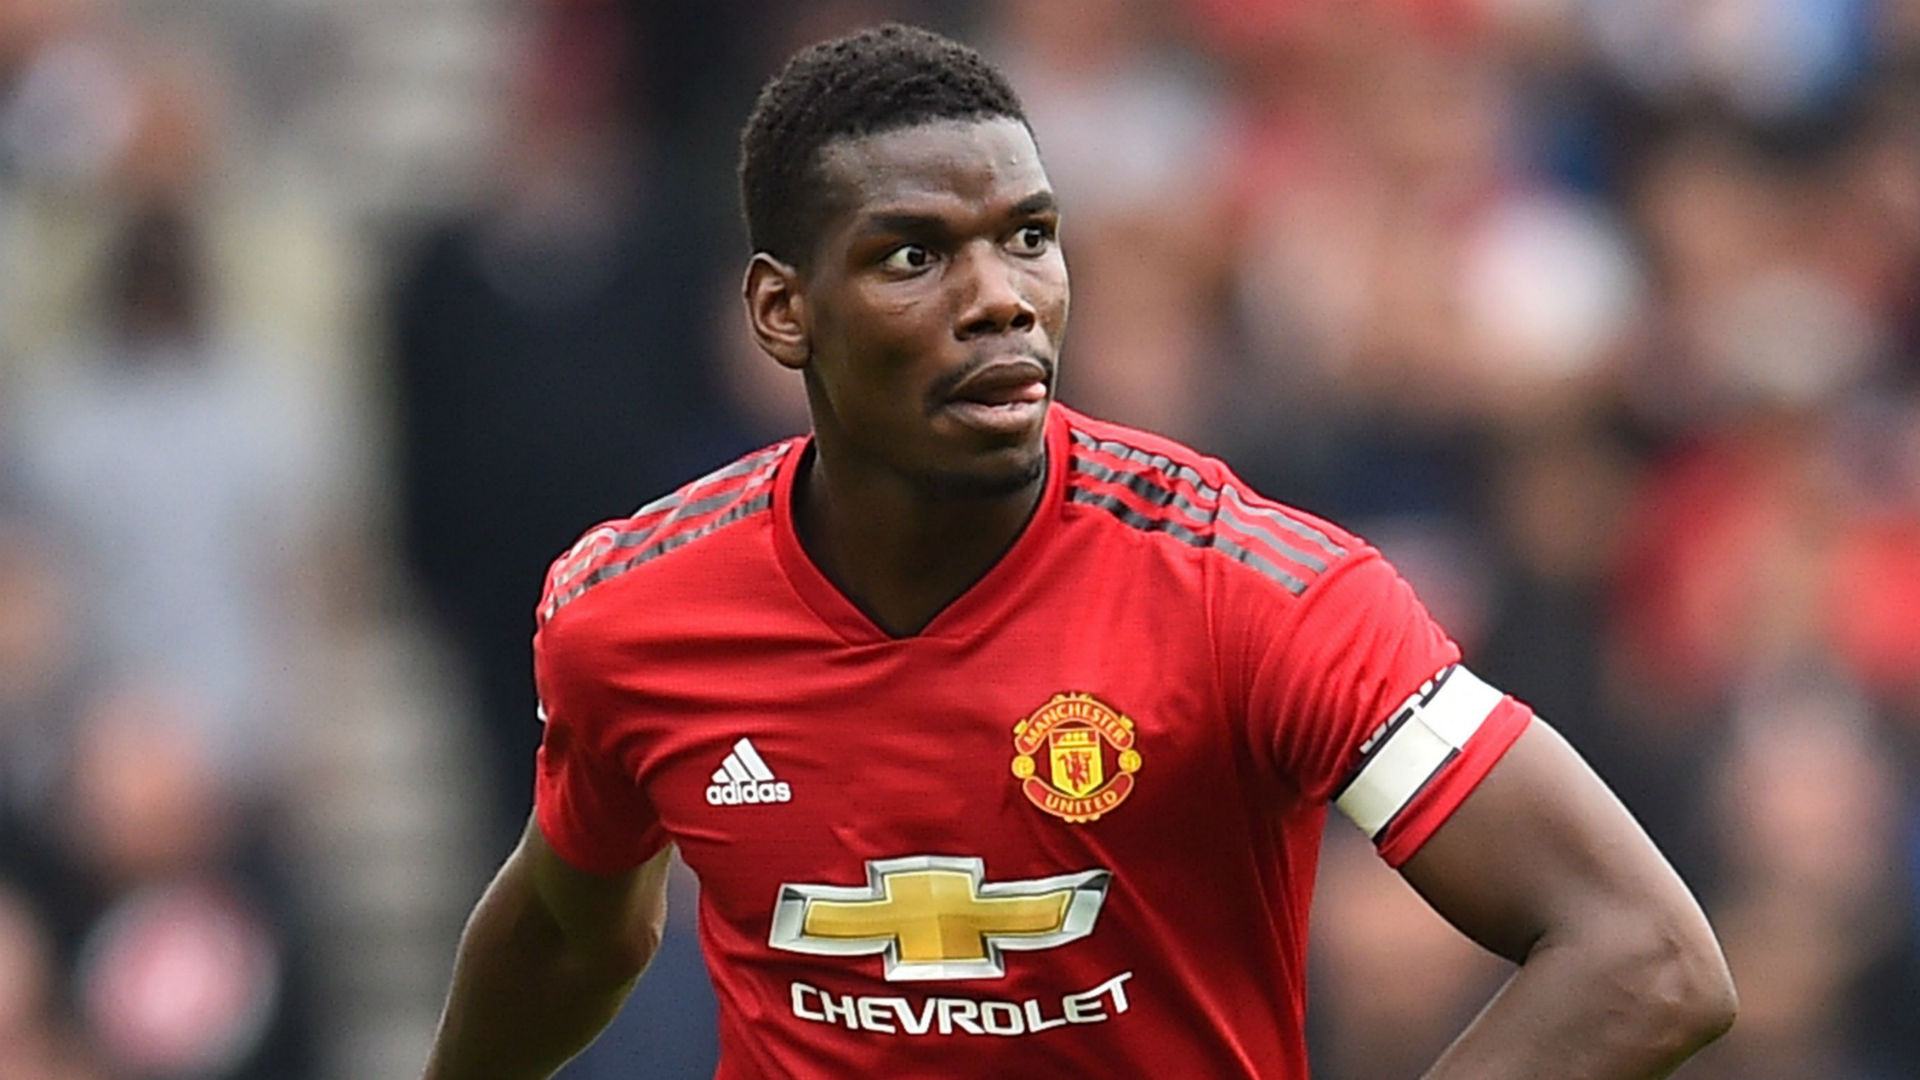 Paul Pogba: Best Fantasy Football Midfielders In The Premier League